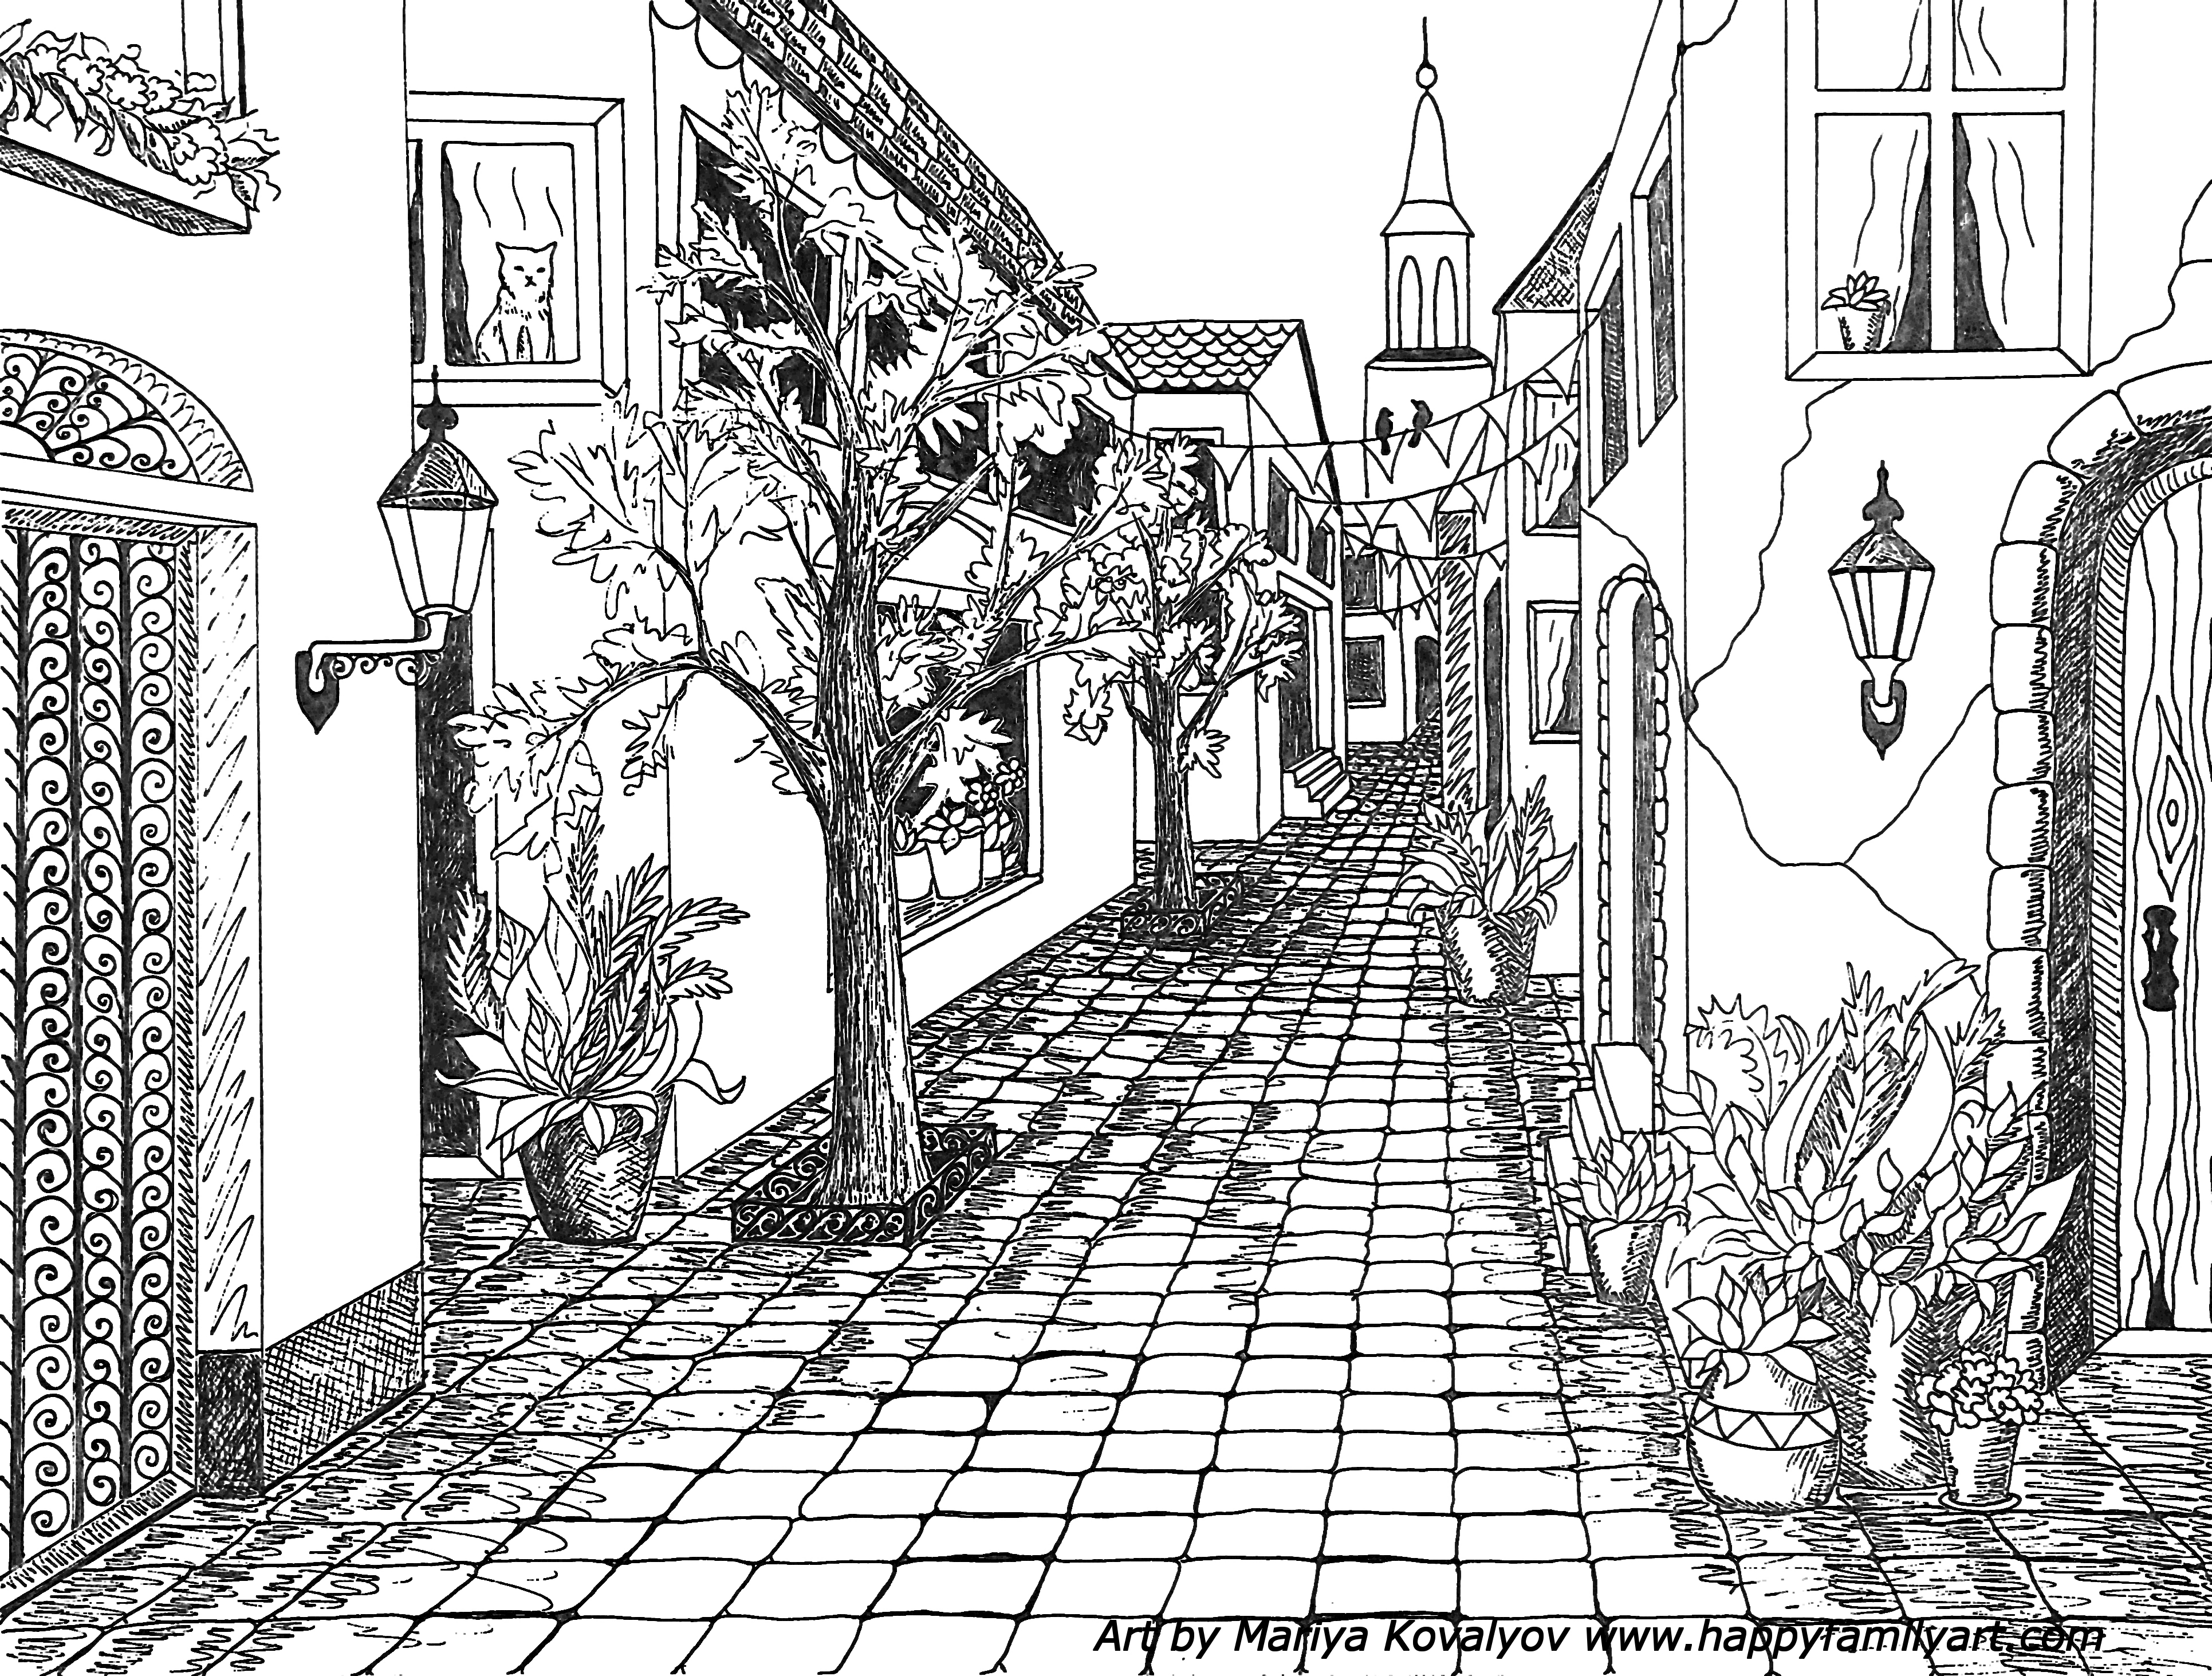 jpg transparent stock Single point perspective of. Drawing perspectives street